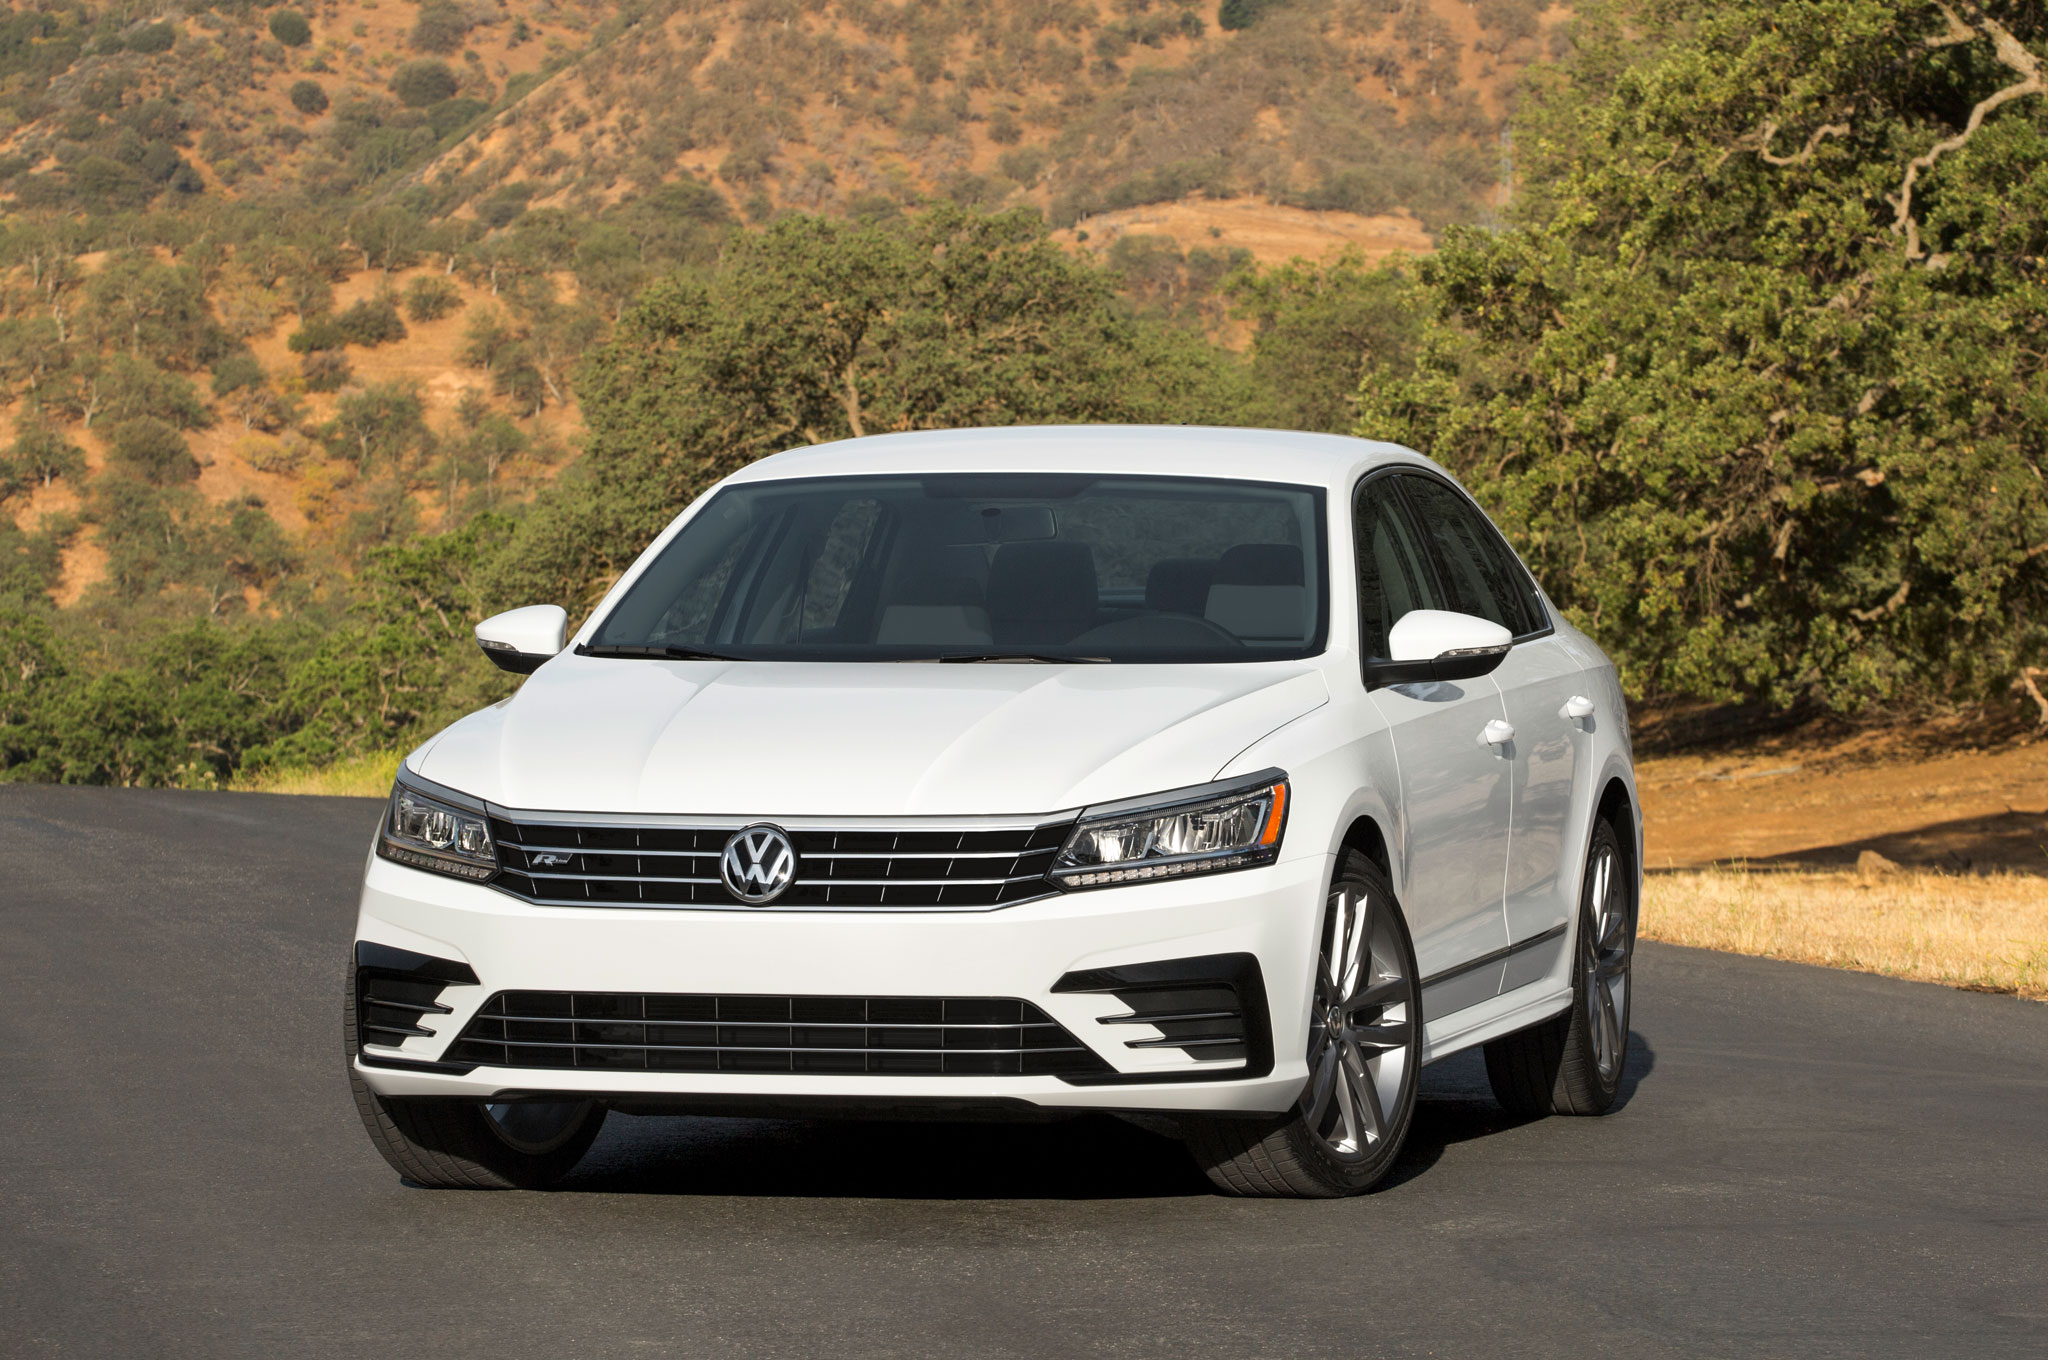 2016 volkswagen passat priced at 23 260 new r line at 24 795. Black Bedroom Furniture Sets. Home Design Ideas